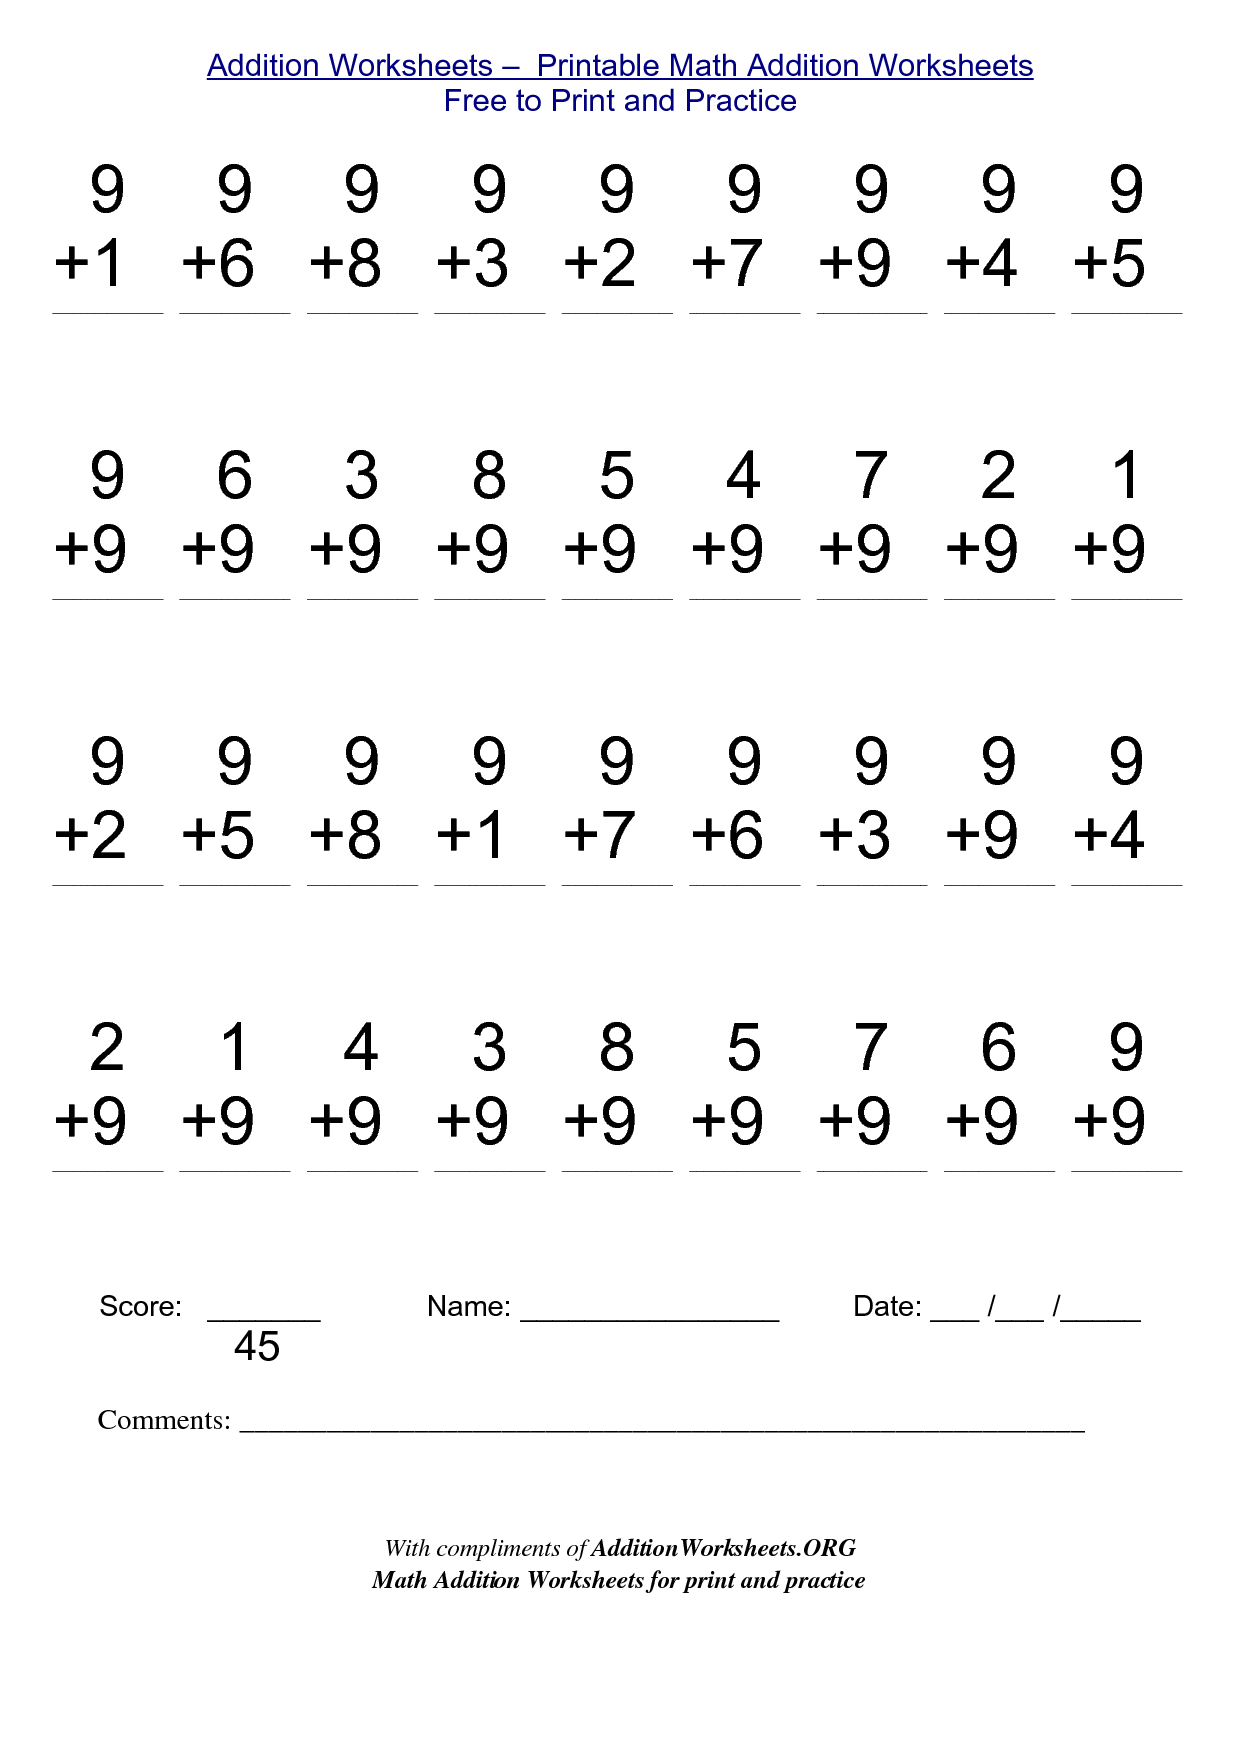 Math Worksheets for Free to Print Alot ME – Second Grade Worksheets Free